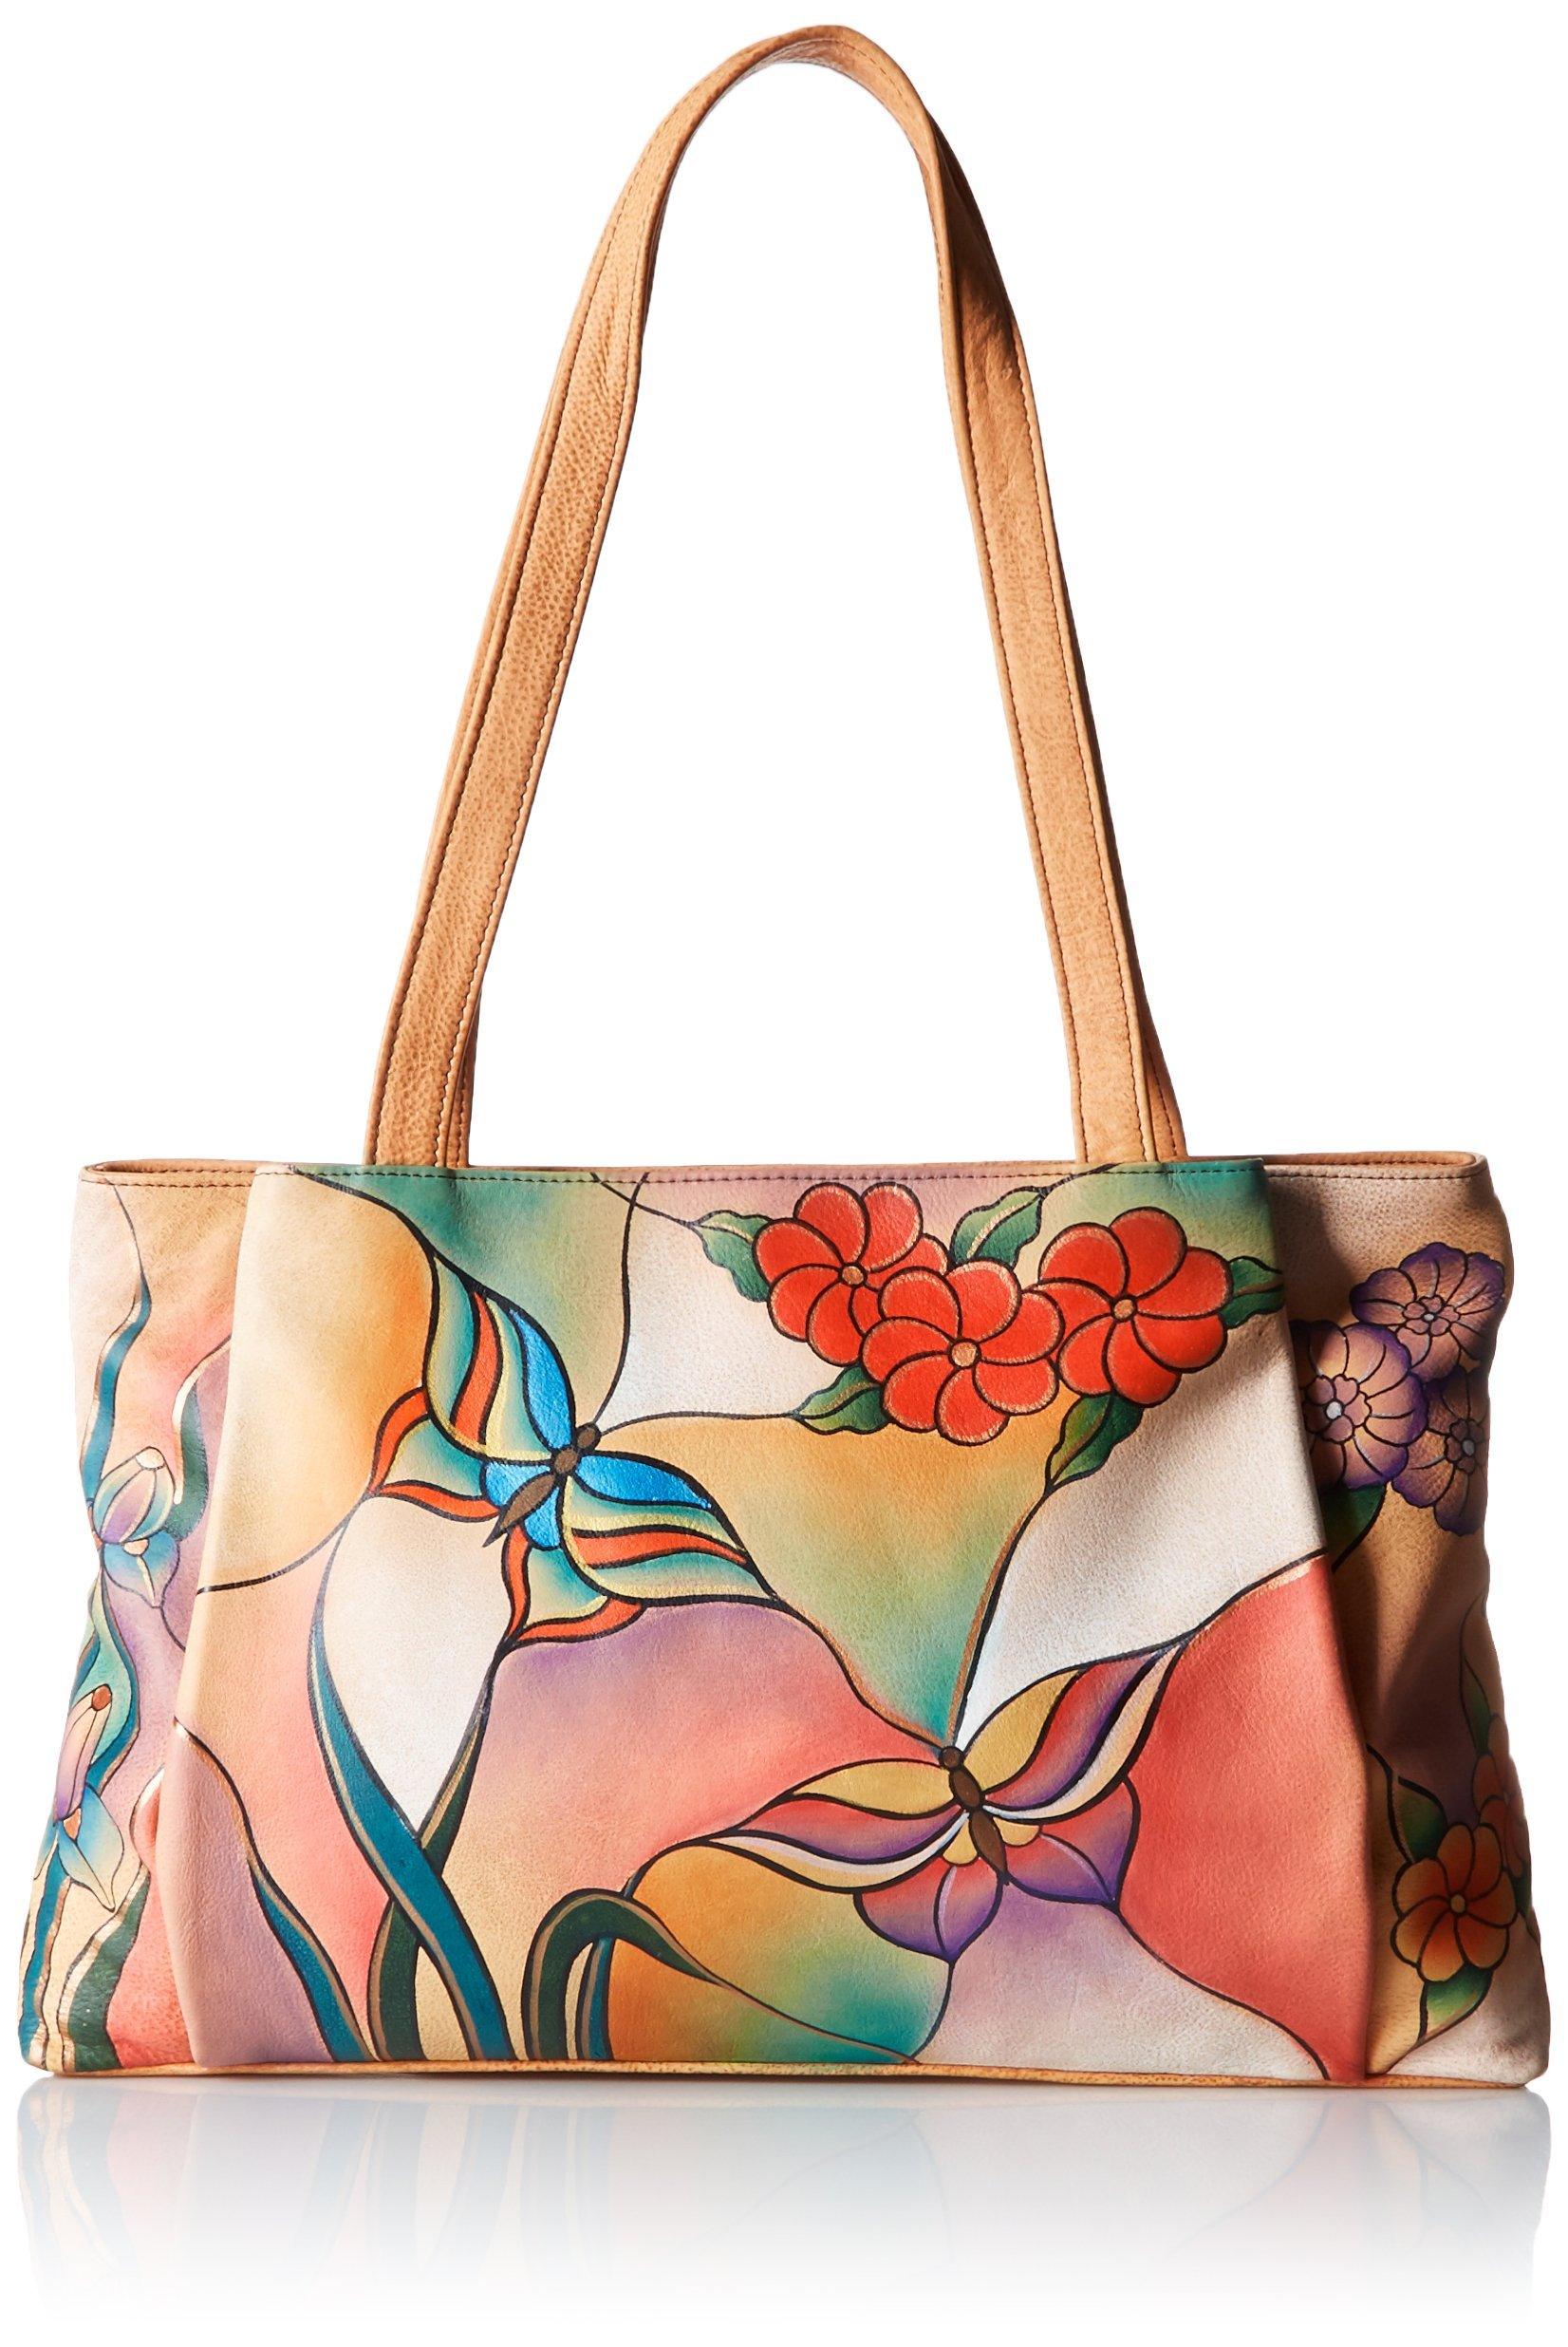 Anuschka Handpainted Leather BGP Large Shopper, Butterfly Glass Painting, One Size by Anna by Anuschka